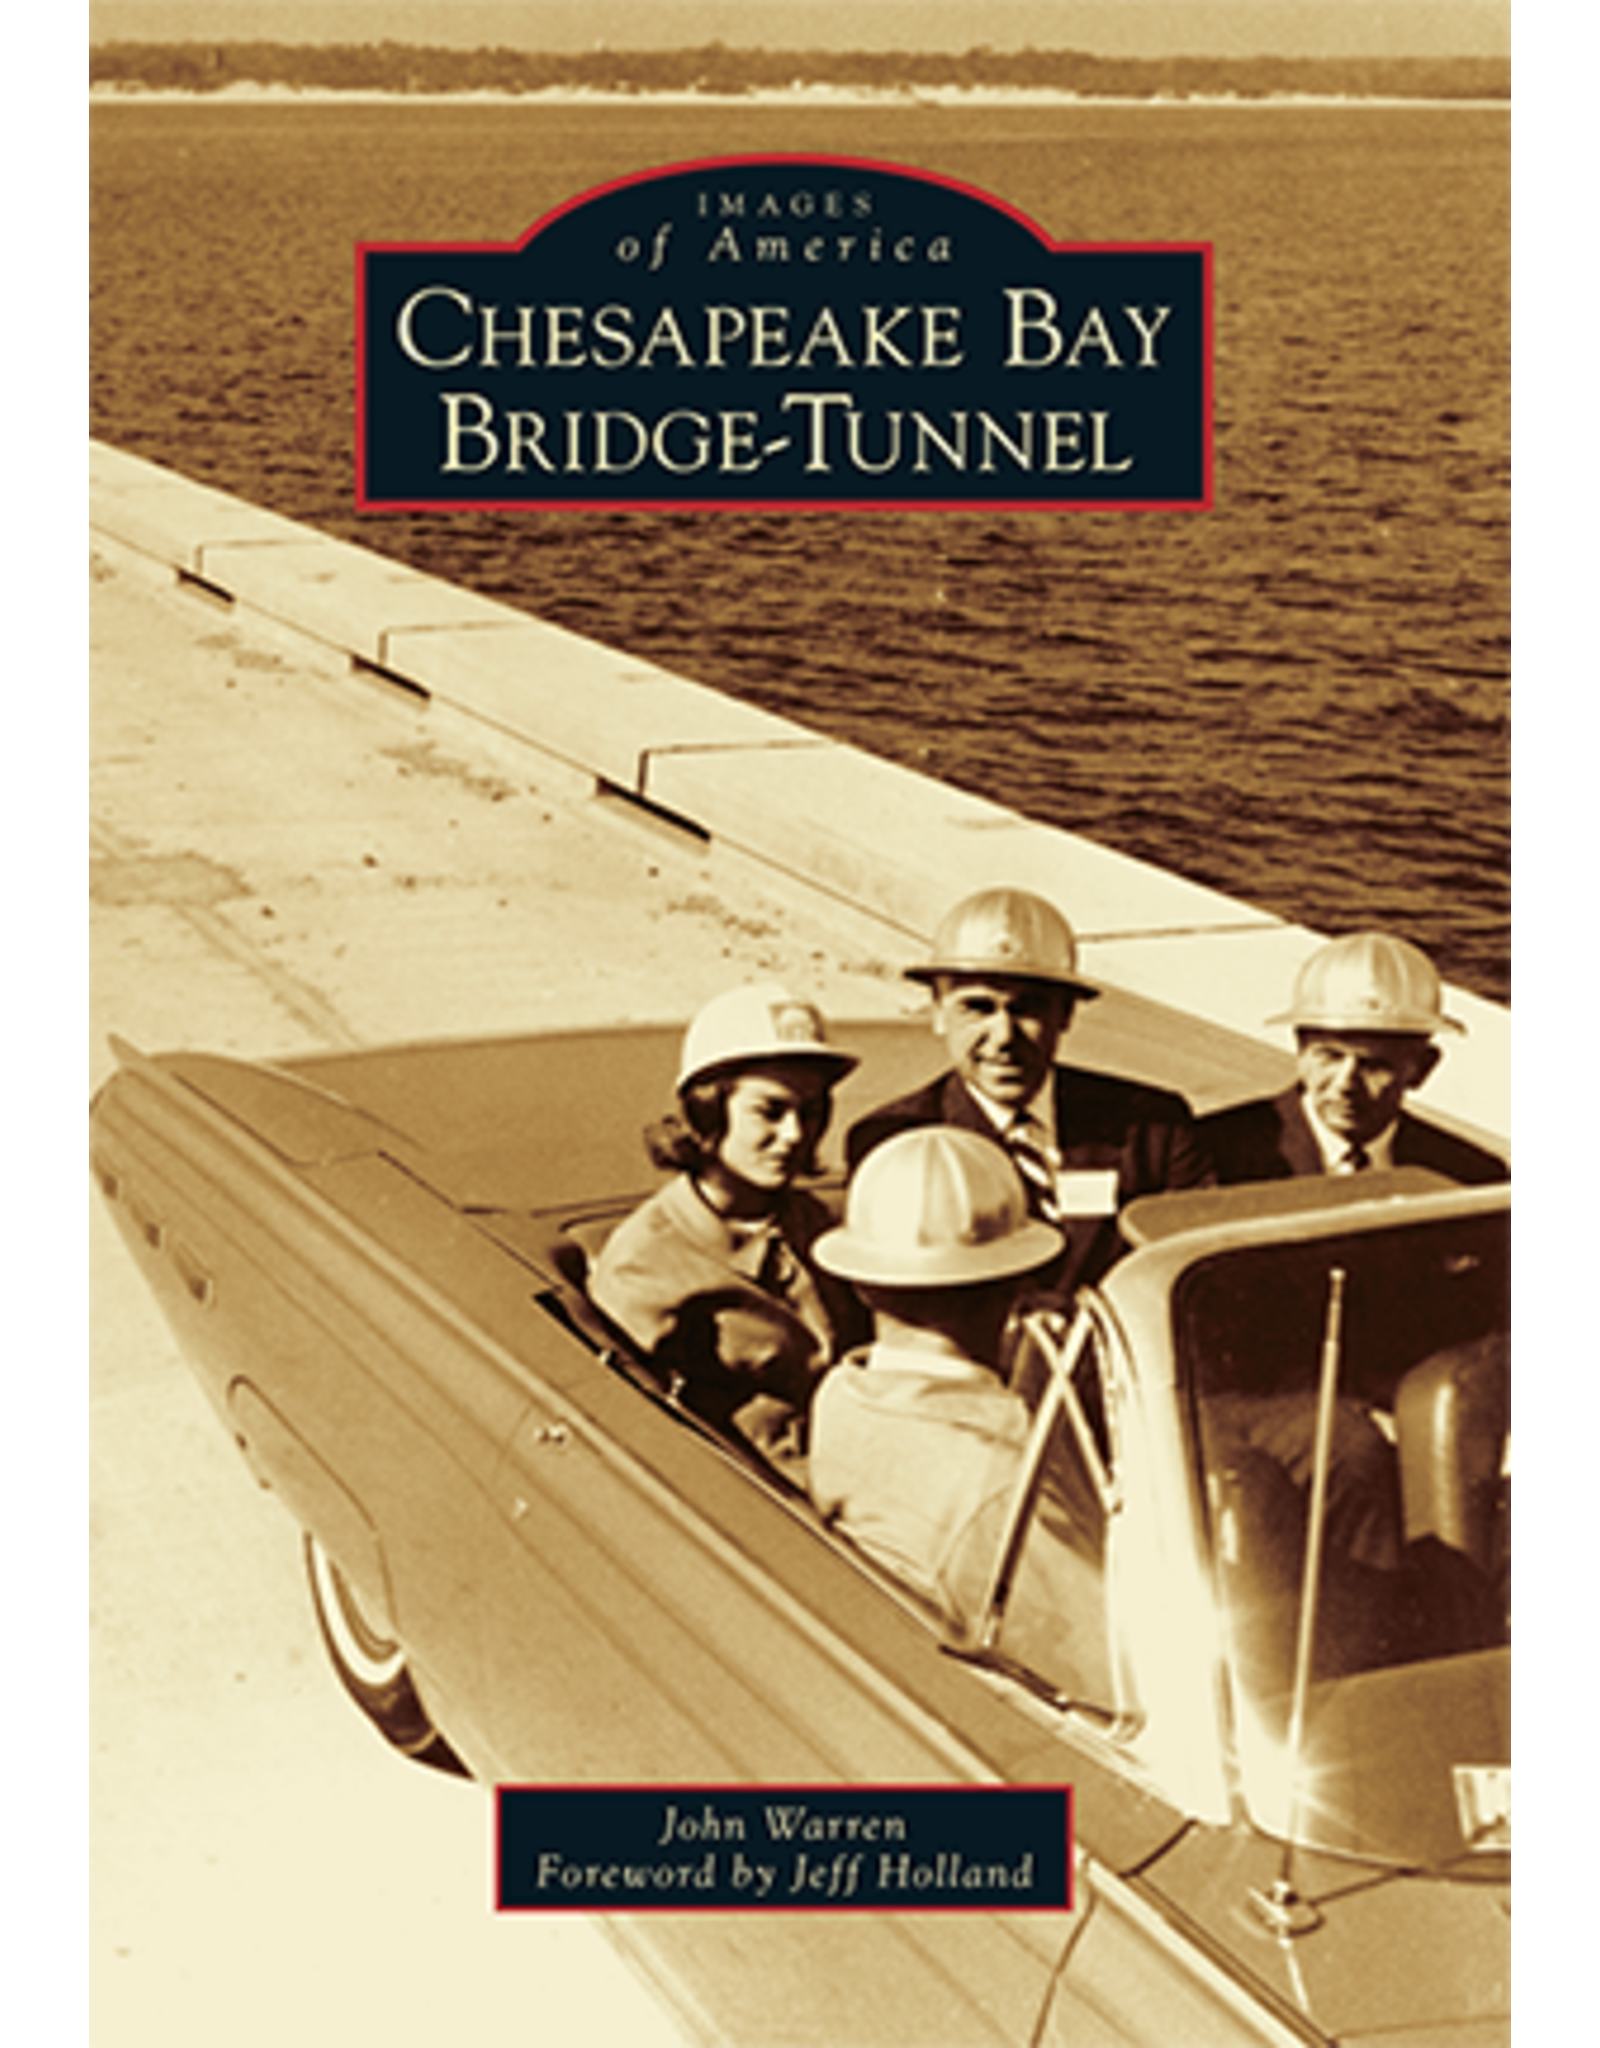 Images of America - Chesapeake Bay Bridge Tunnel